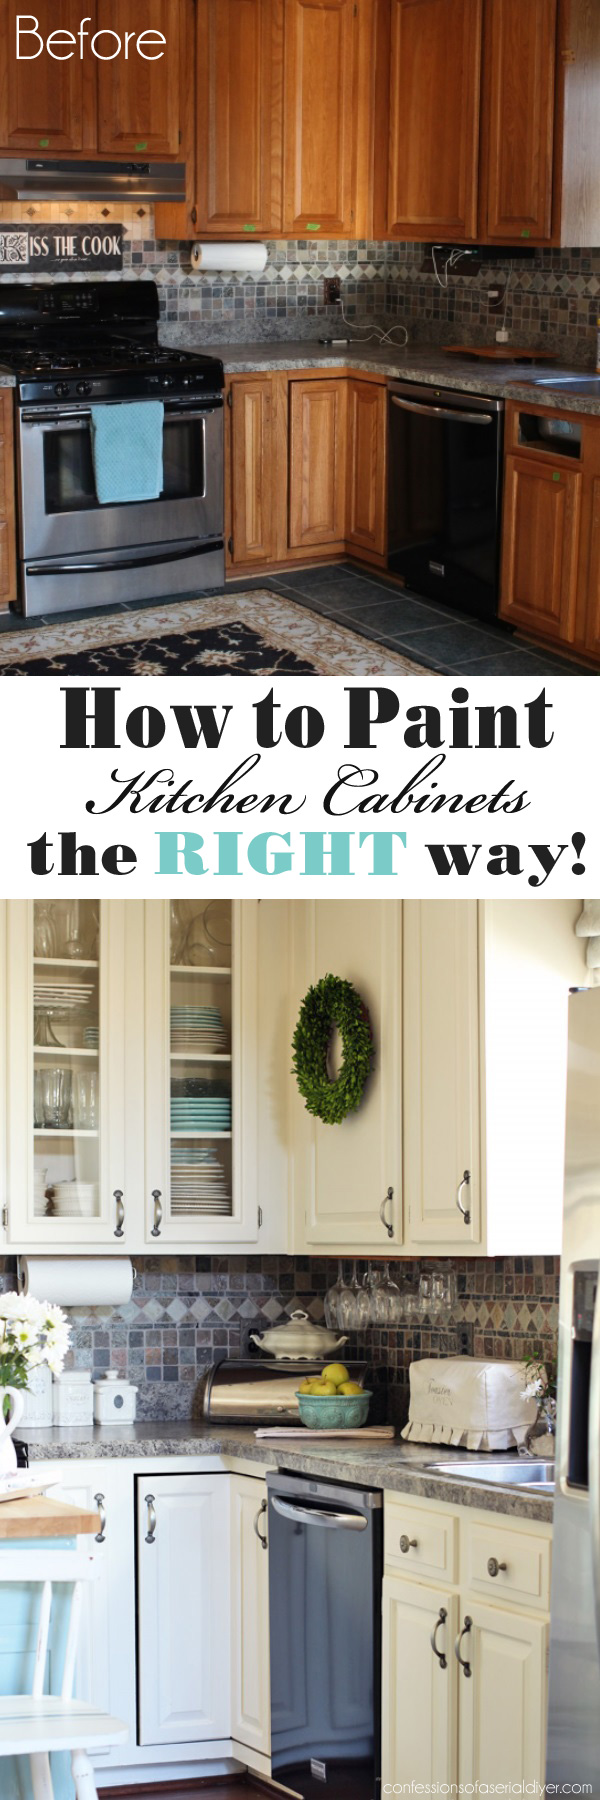 Painted Kitchen Cabinets: Three Years Later | Confessions of a ...